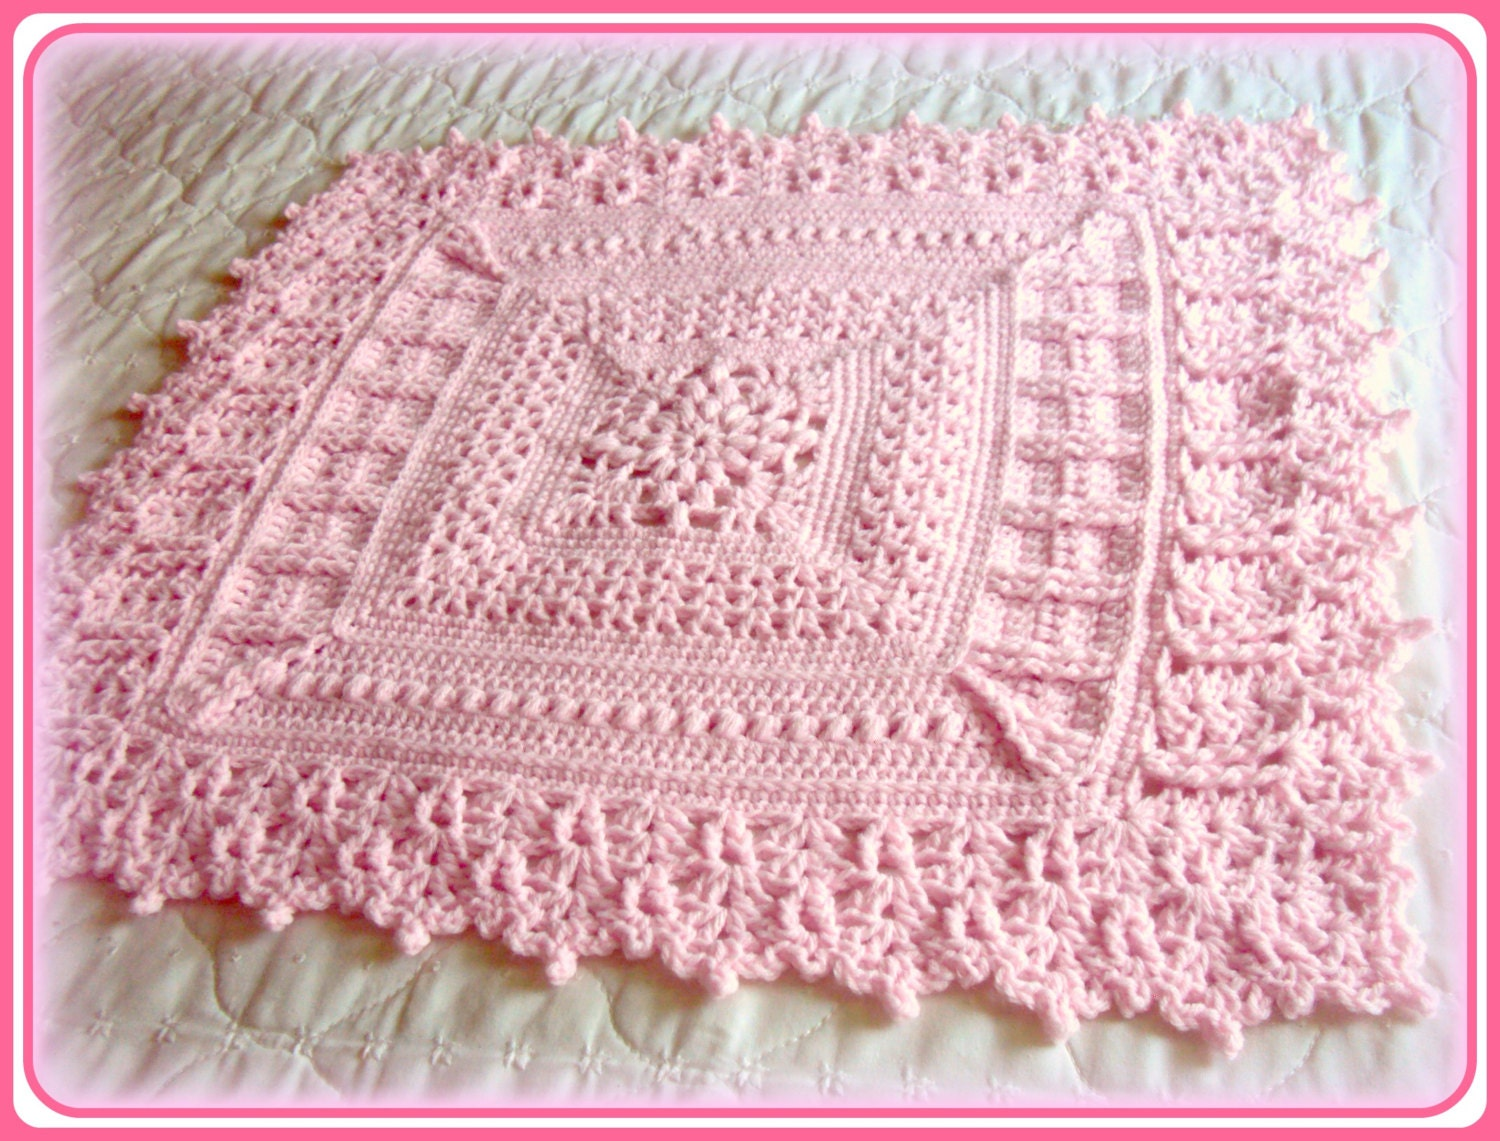 New Crochet Baby Afghan Patterns : Crochet a scarf ? Crochet a scarf is easy and simple